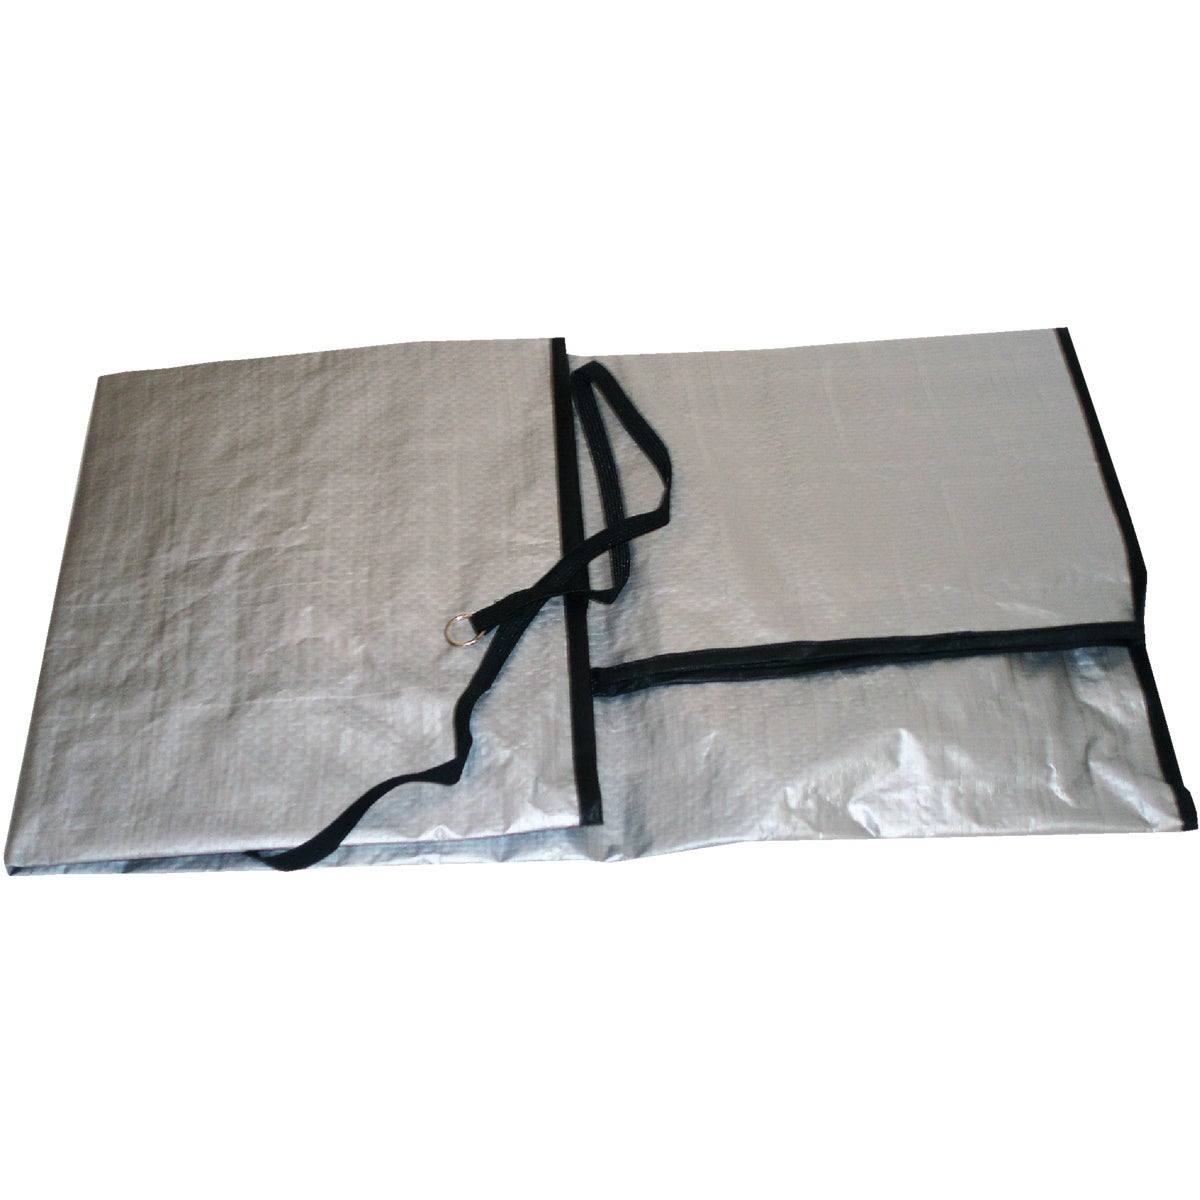 34X34X30 SQUARE AC COVER